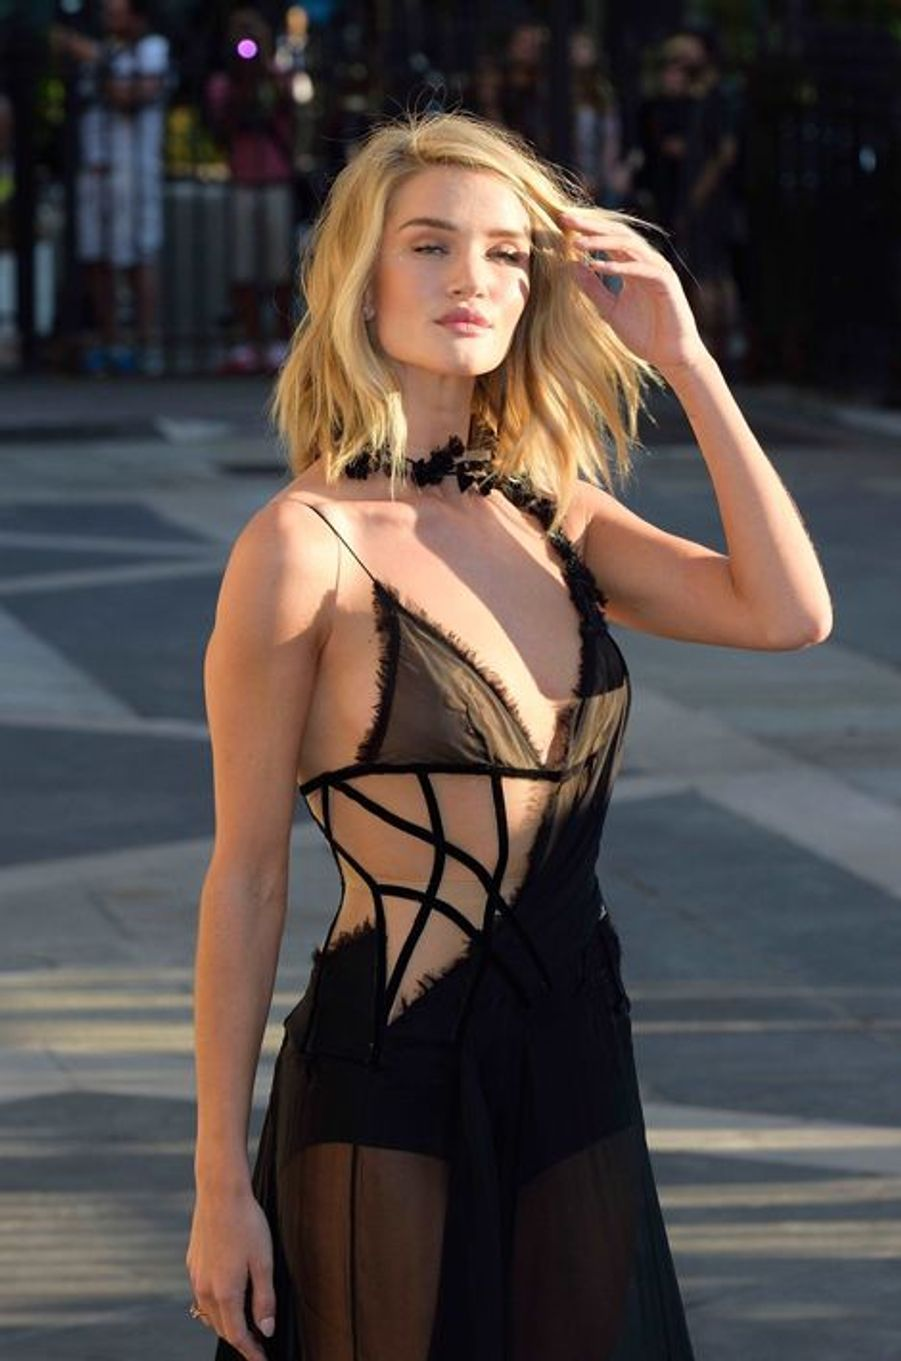 Rosie Huntington-Whiteley à Paris le 5 juillet 2015